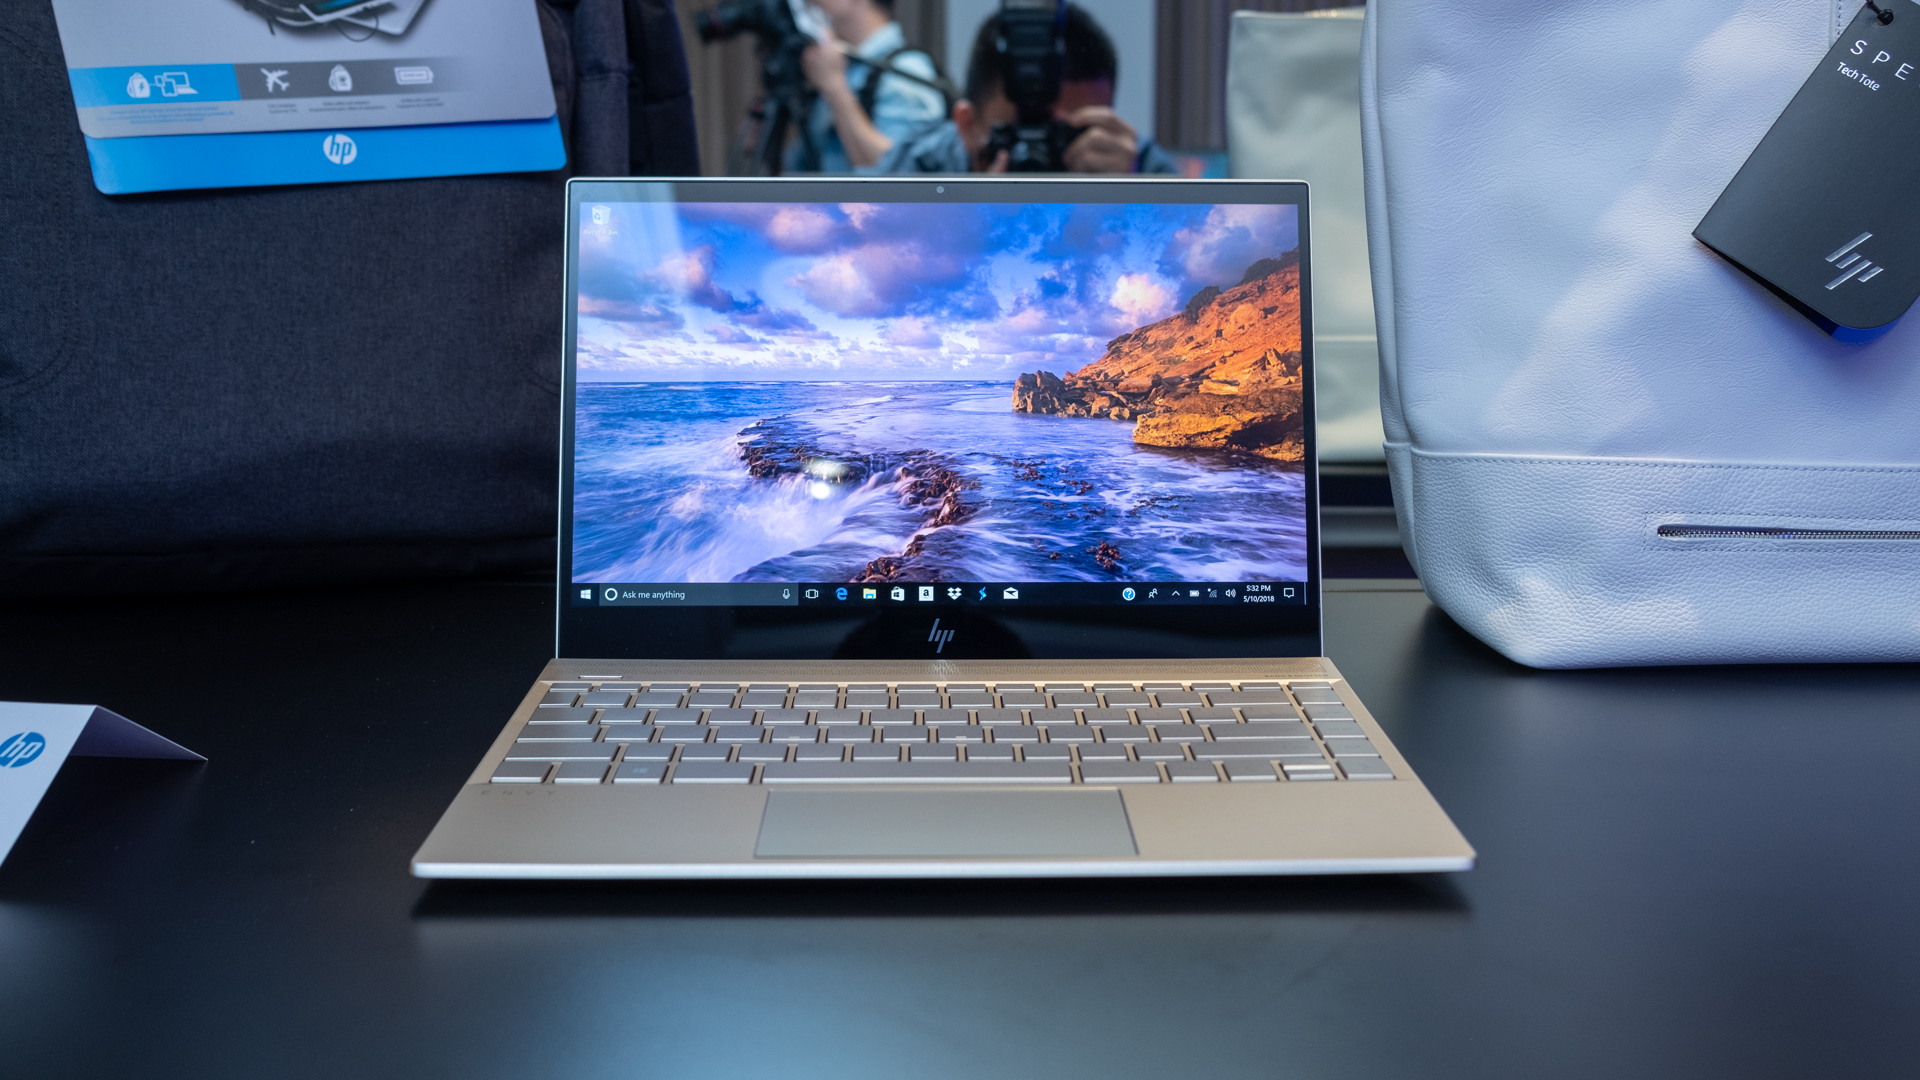 Hands on: HP Envy 13 (2018) review | TechRadar